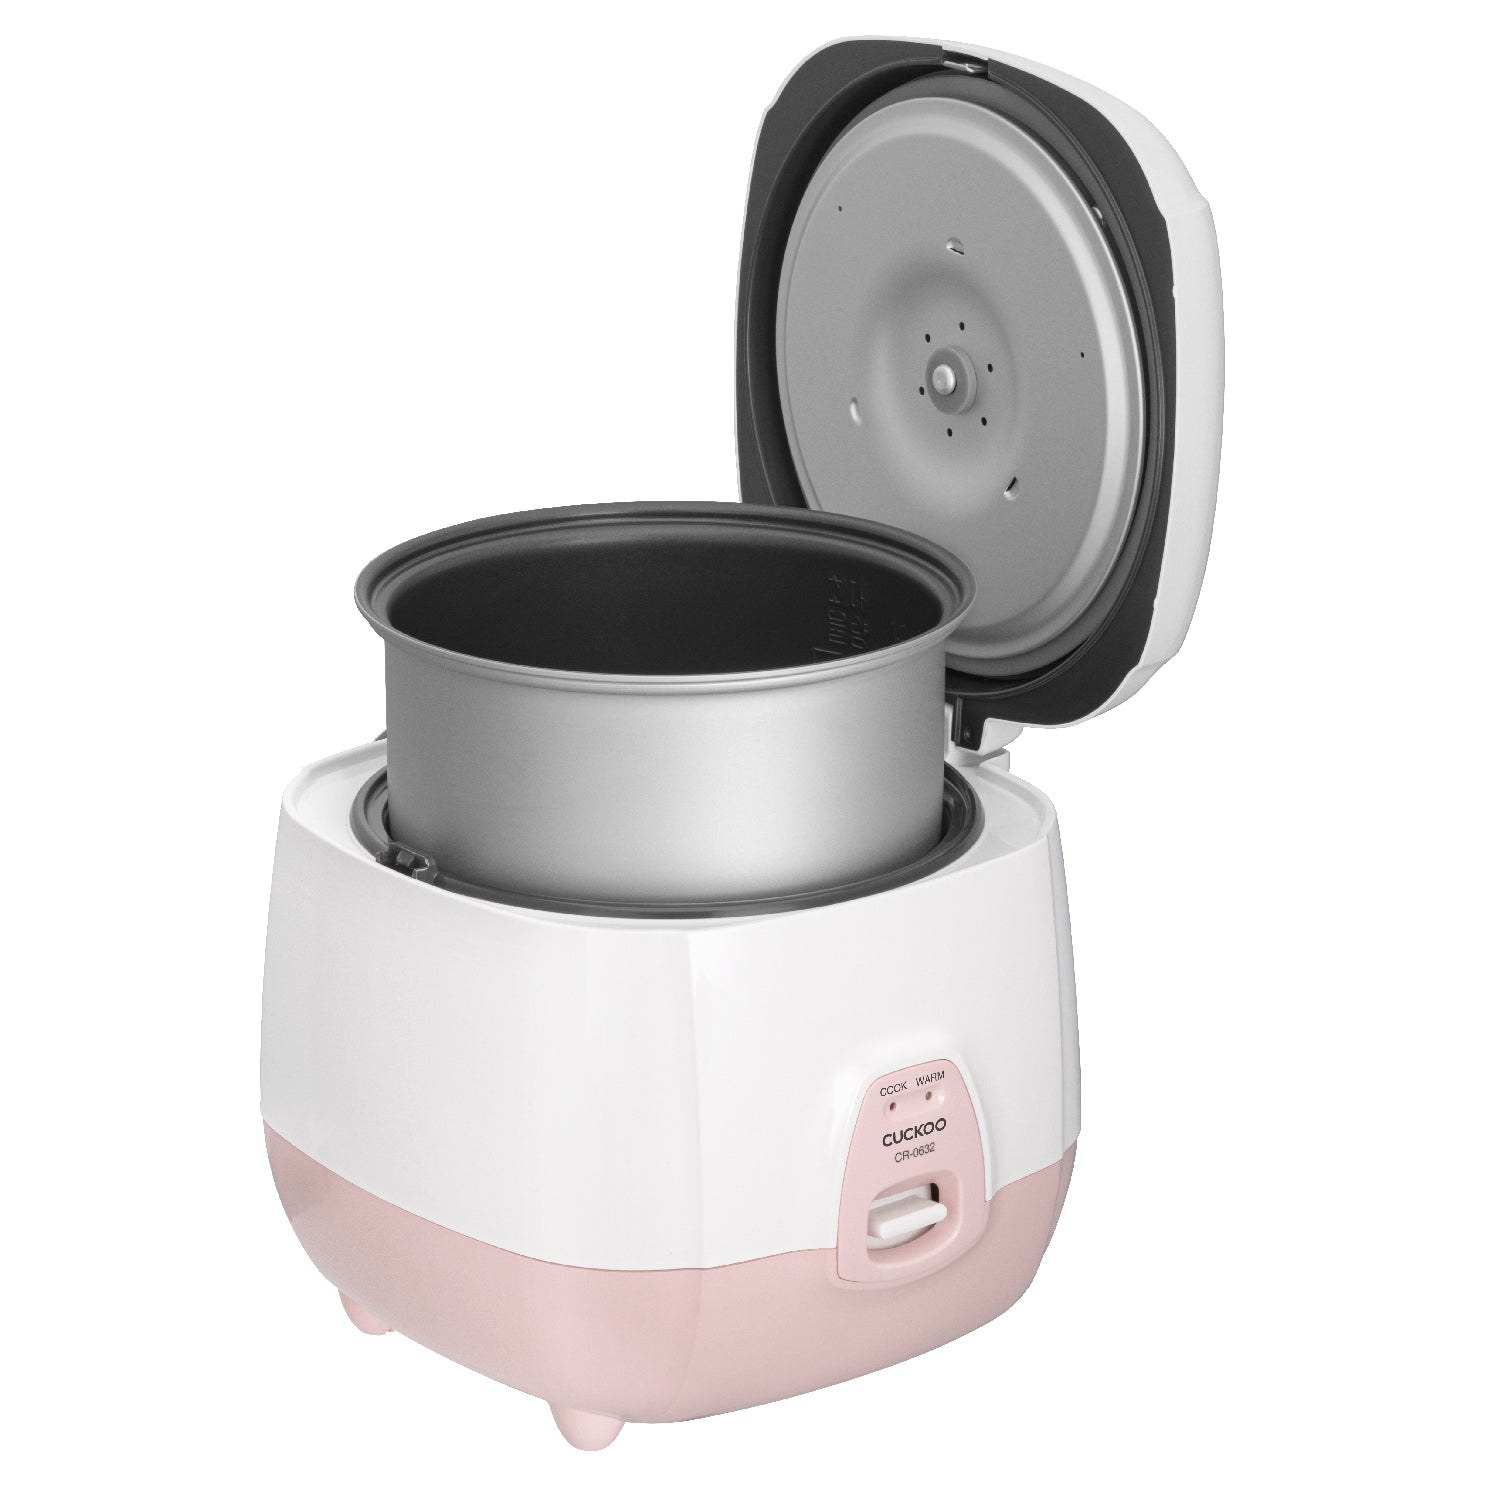 CUCKOO RICE COOKER CR-0632